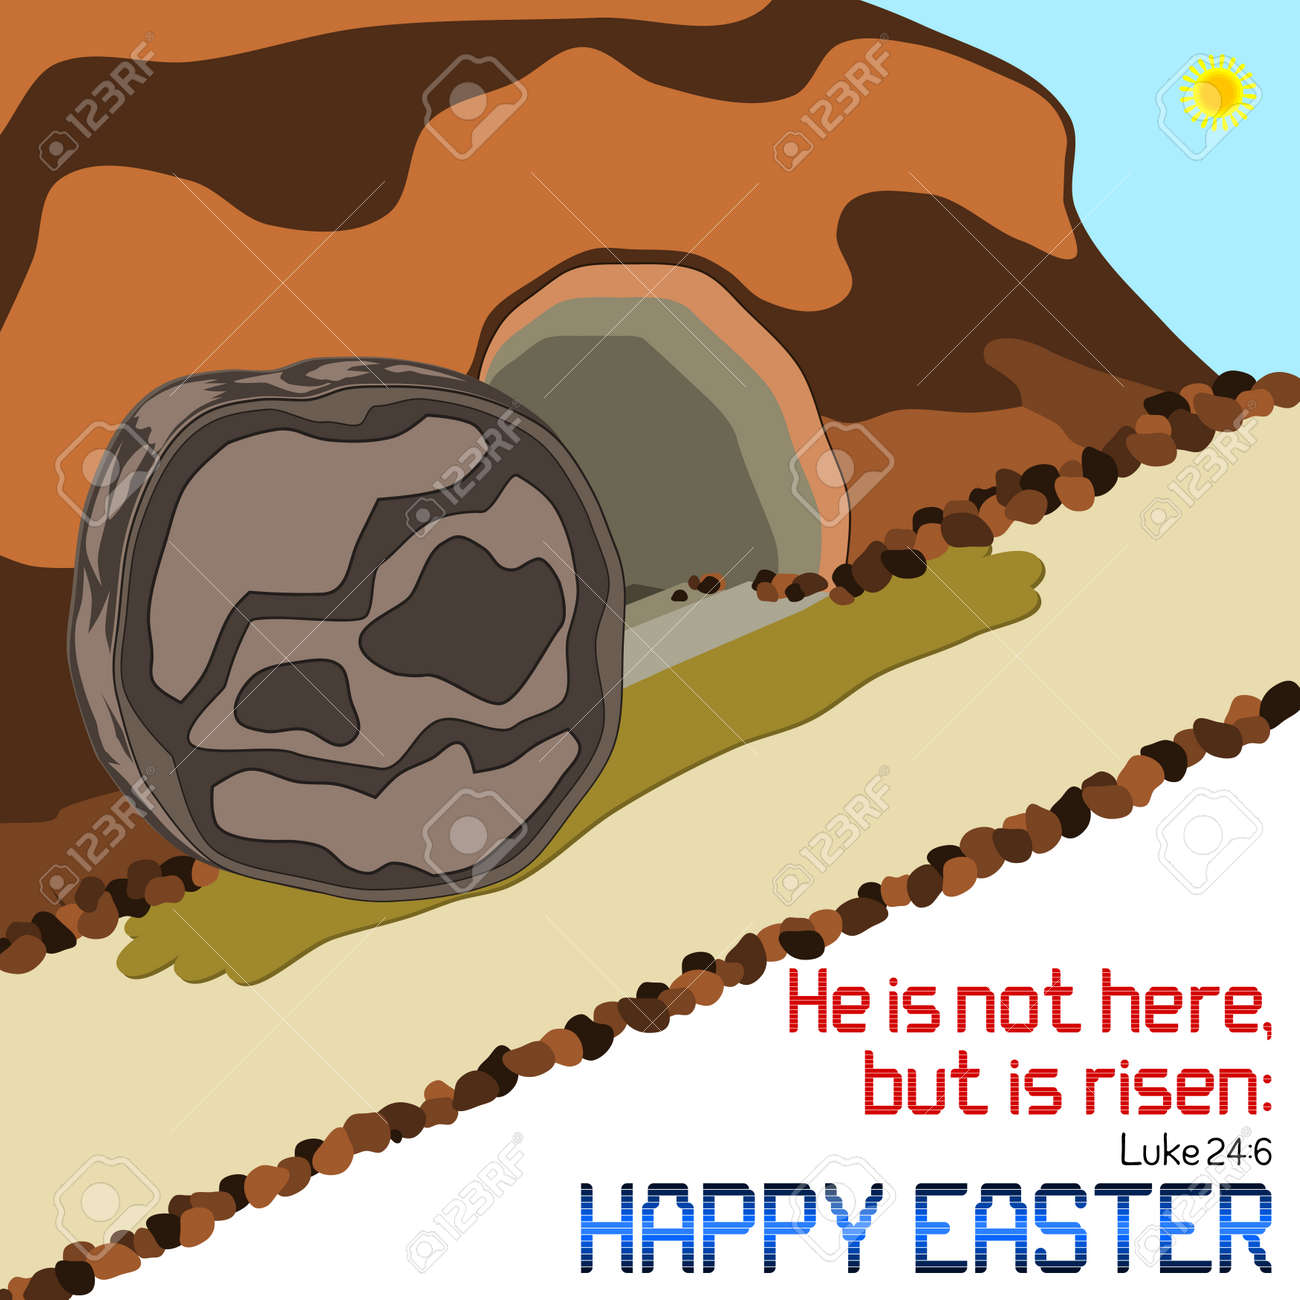 Happy Easter   Happy Easter Empty Tomb Illustration With Bible Verse On  White Background. Stock